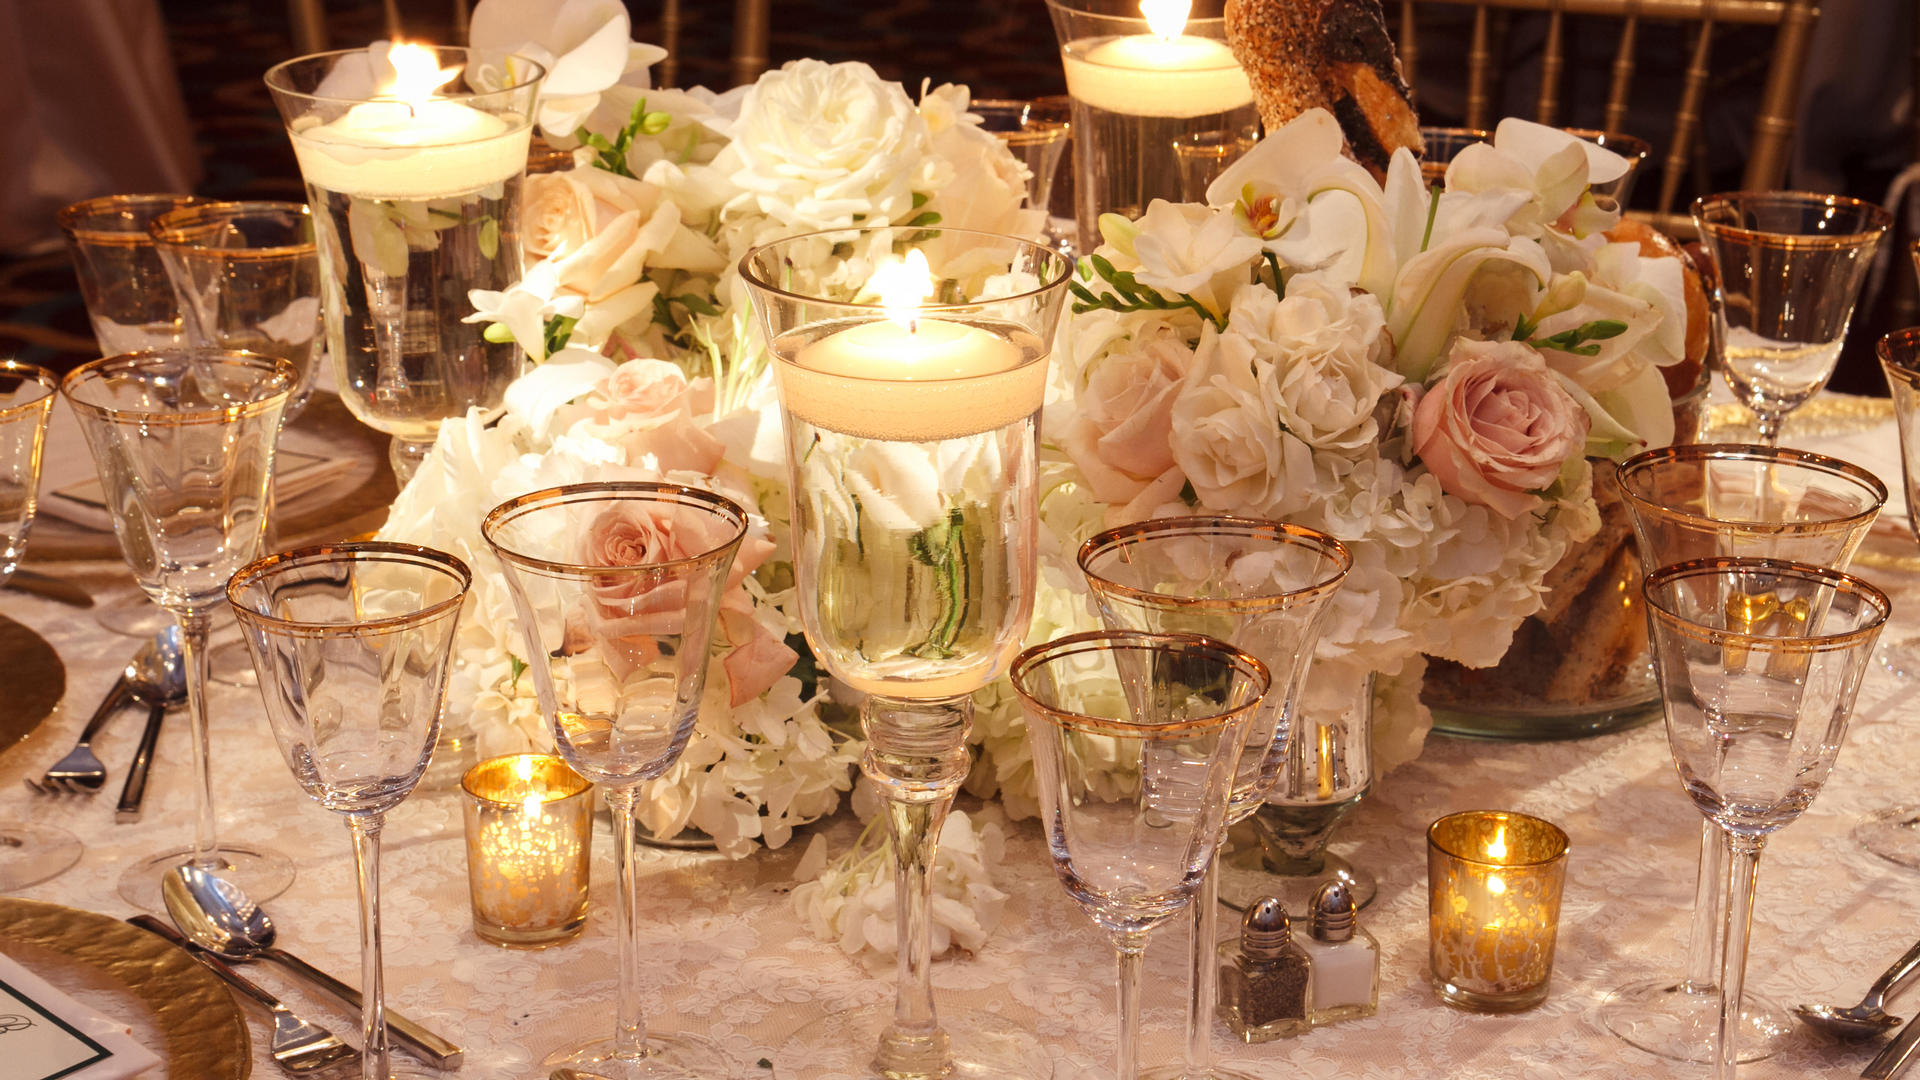 elegant wedding table with large flower centerpiece